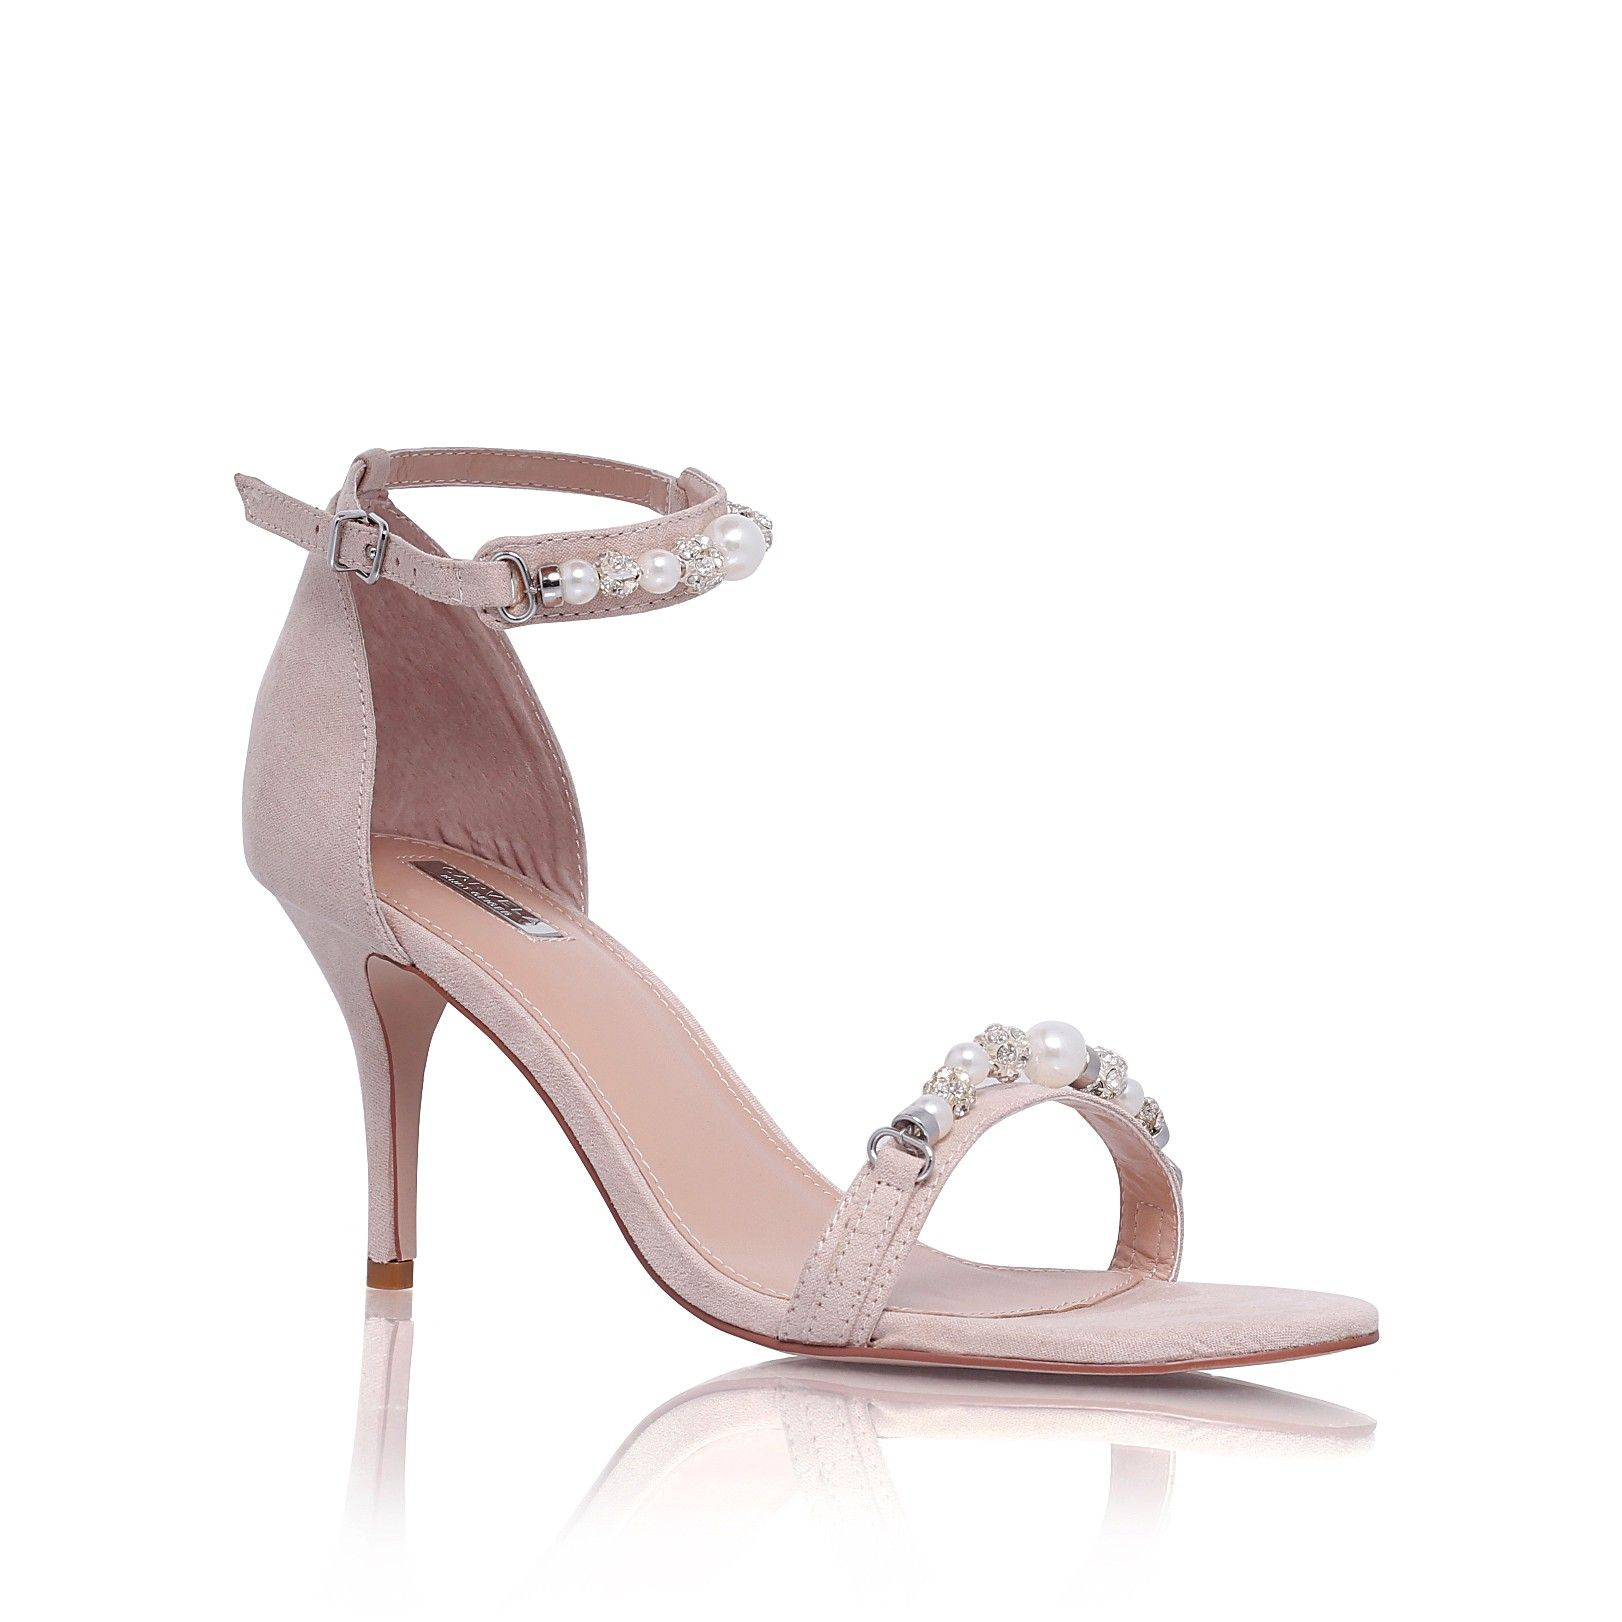 Pin on Shoes! Heels